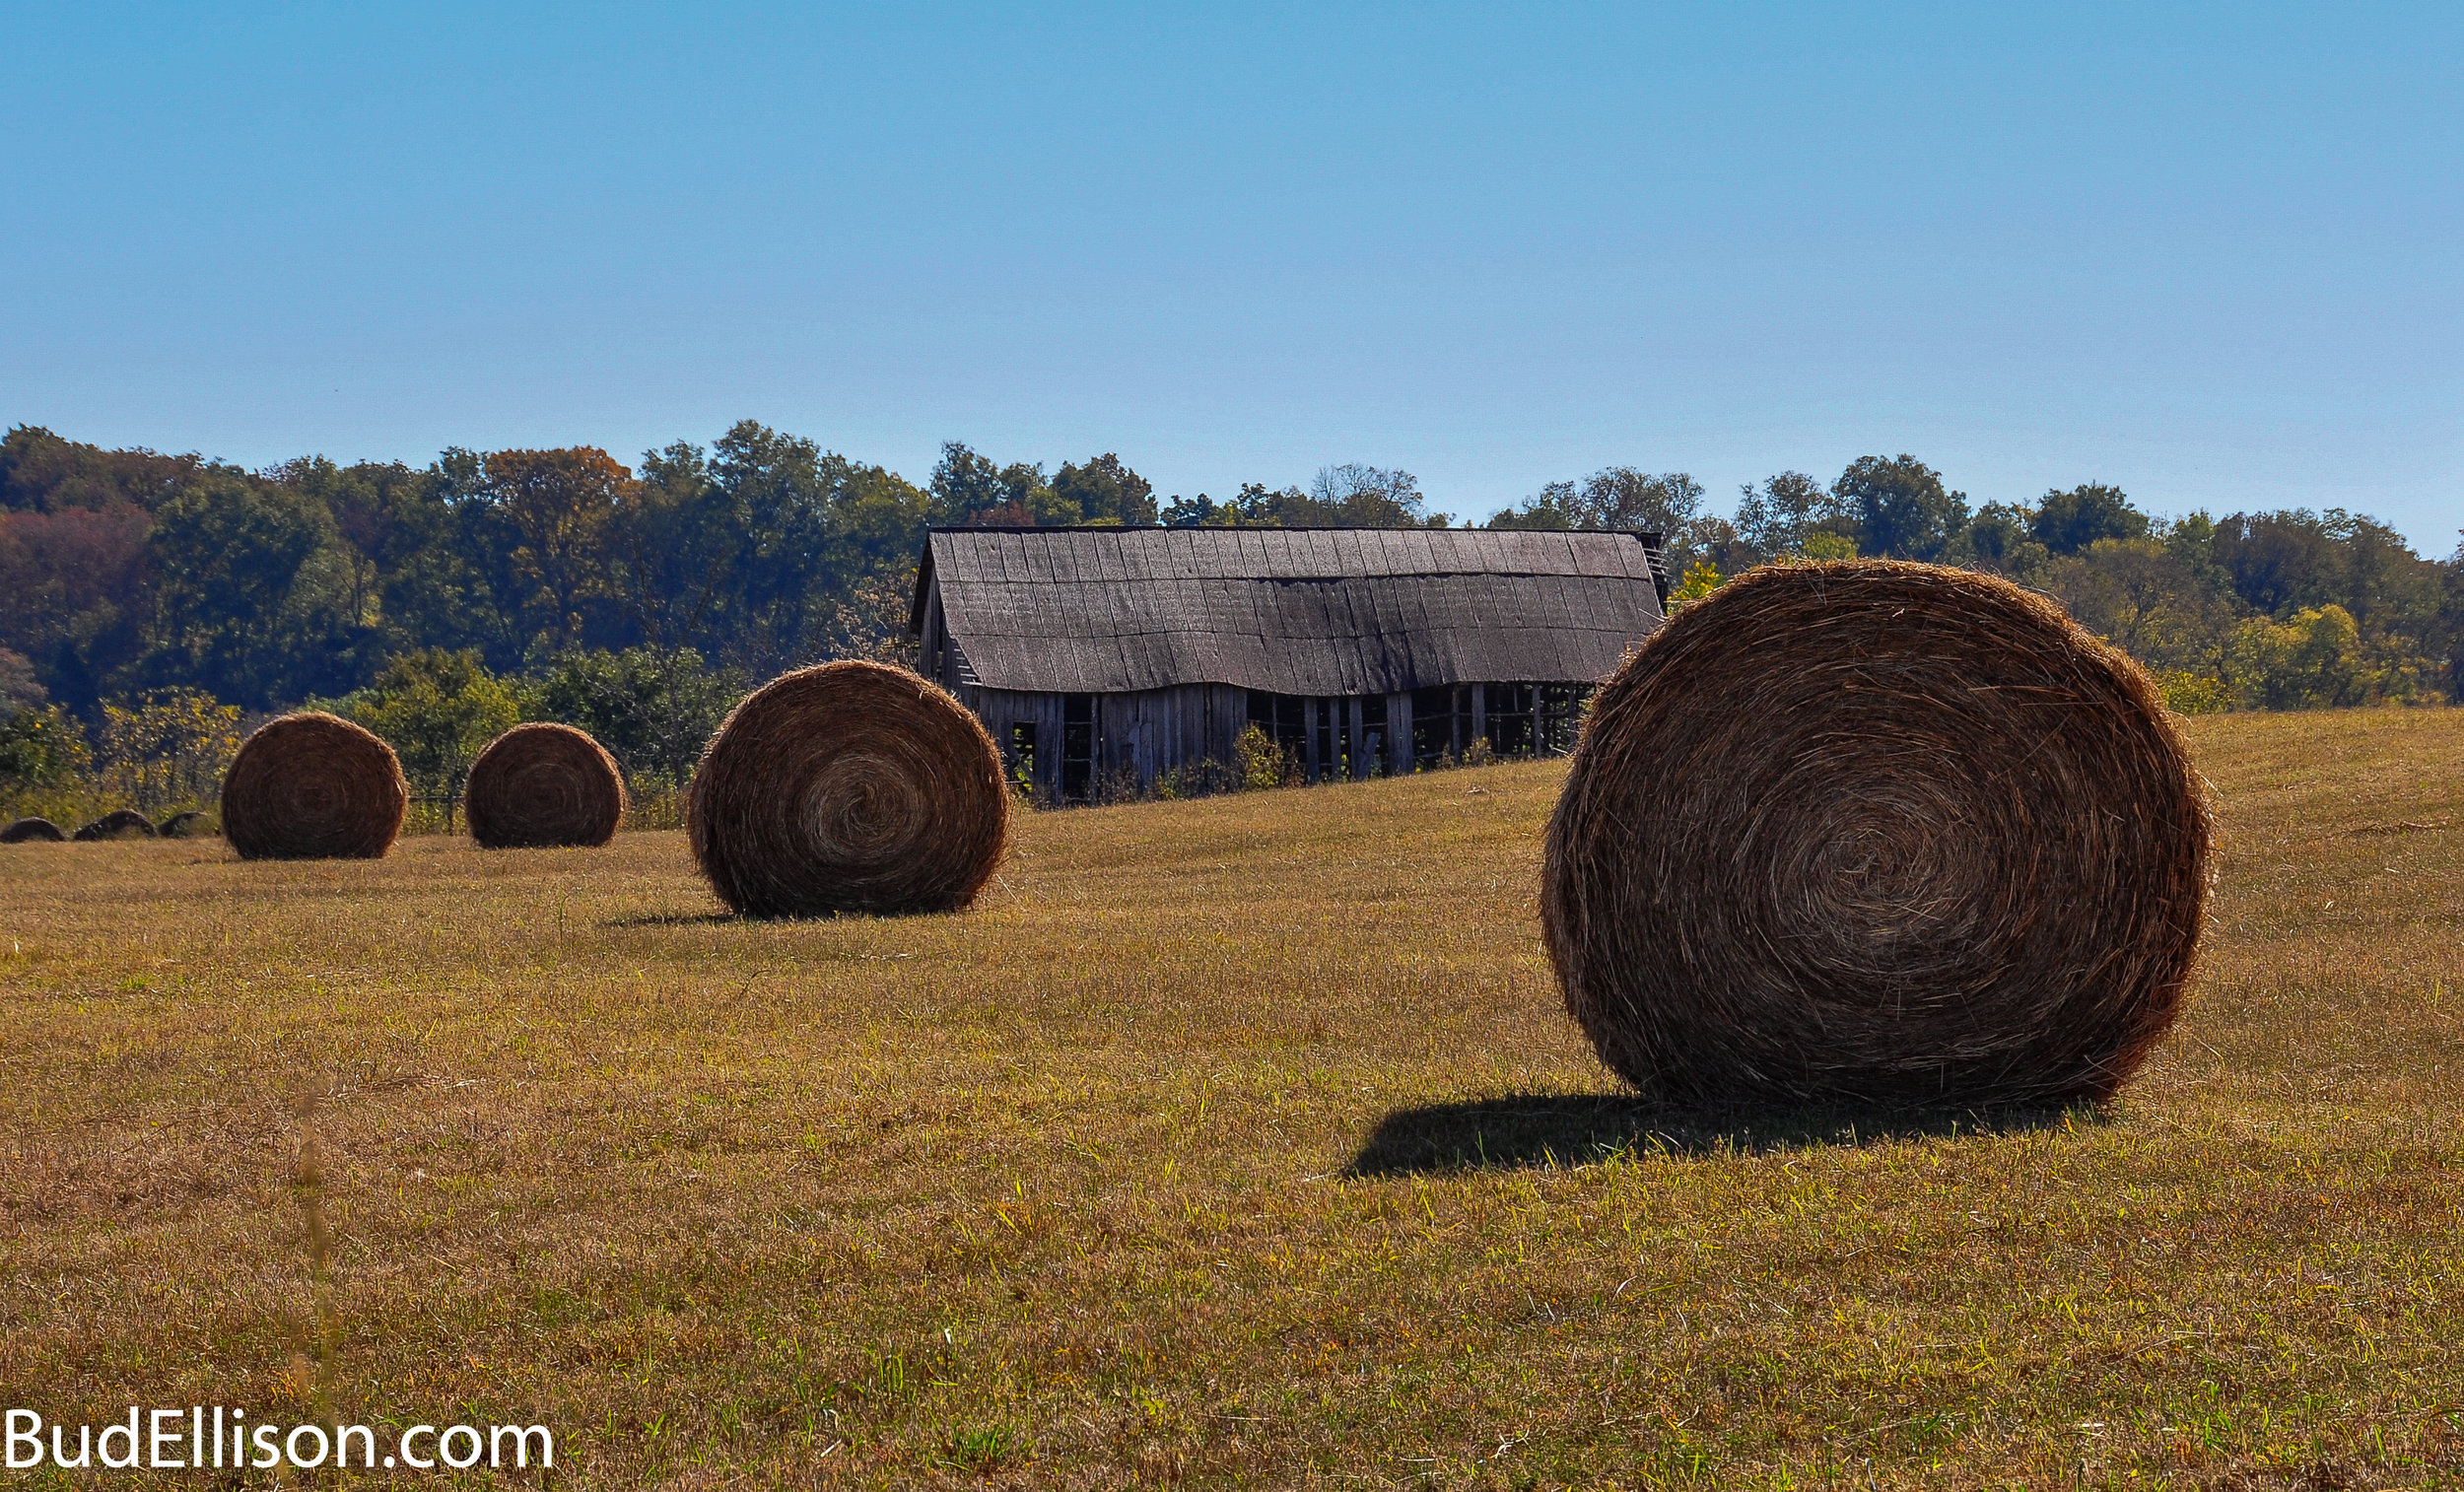 Round hay bales in field in Alabama with old barn in background.  Image is from flickr by Bud Ellison.